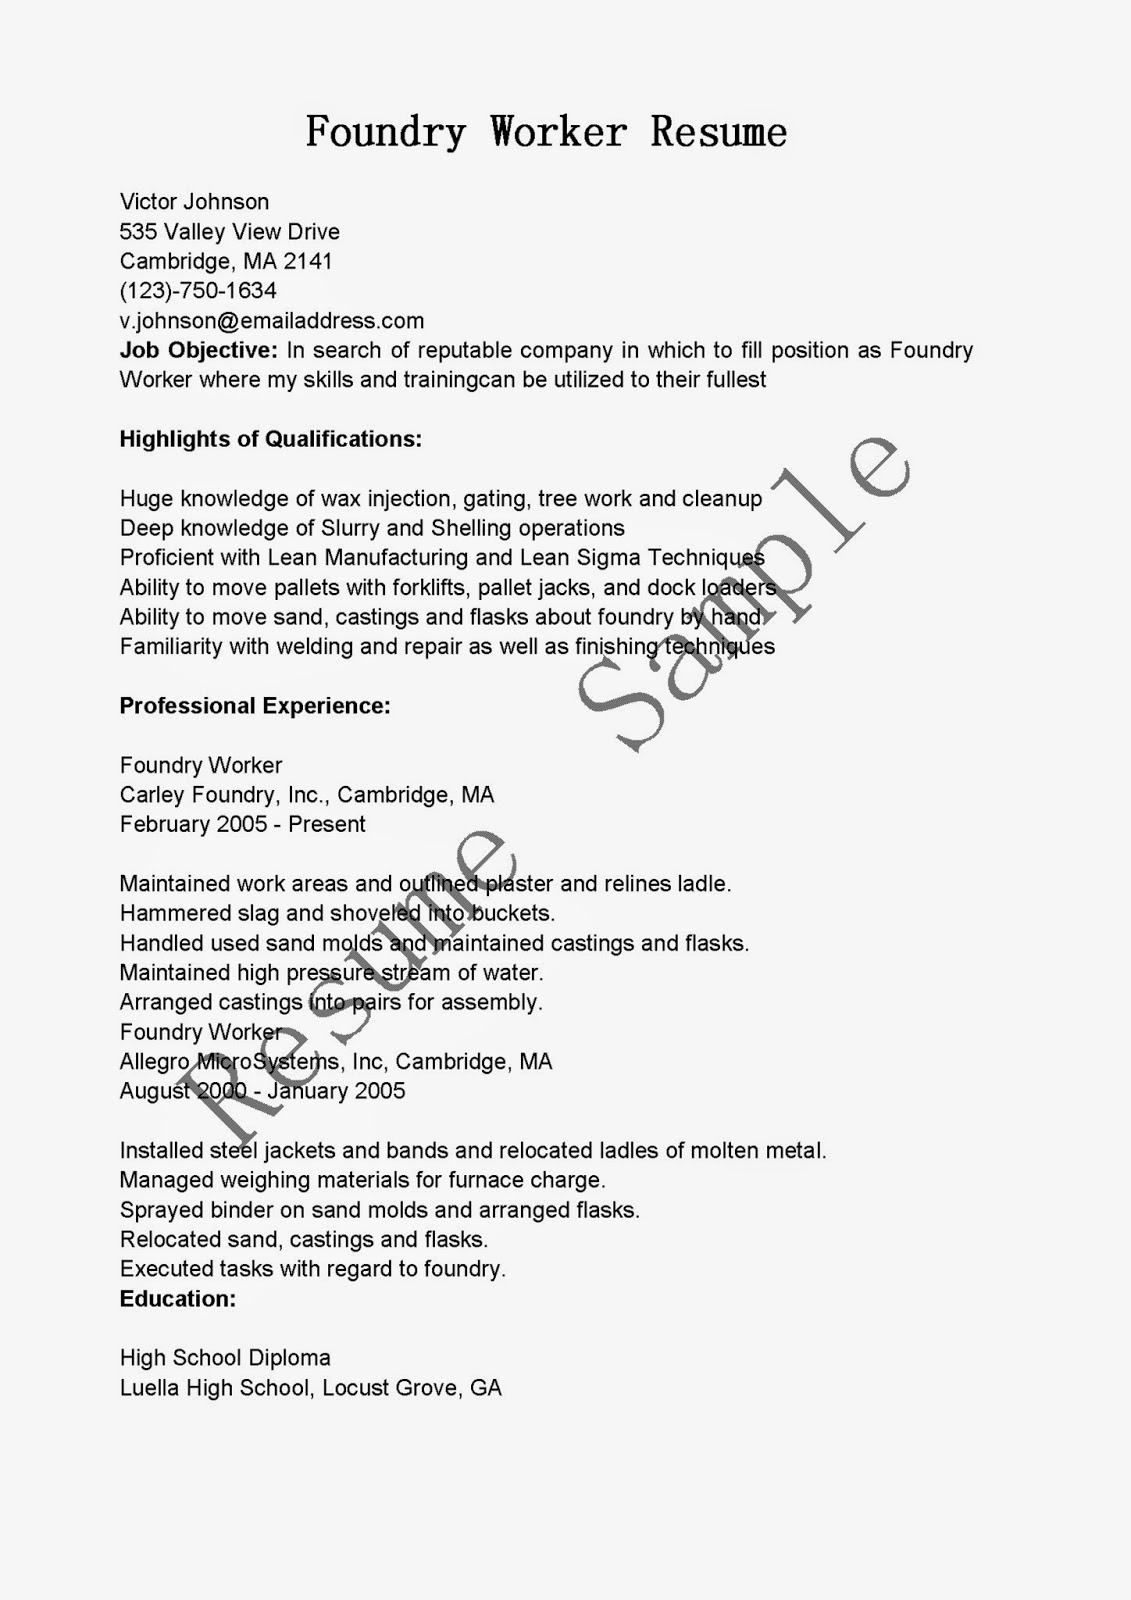 Resume-samples-worker-resumes-foundry-worker - travelturkey.us ...